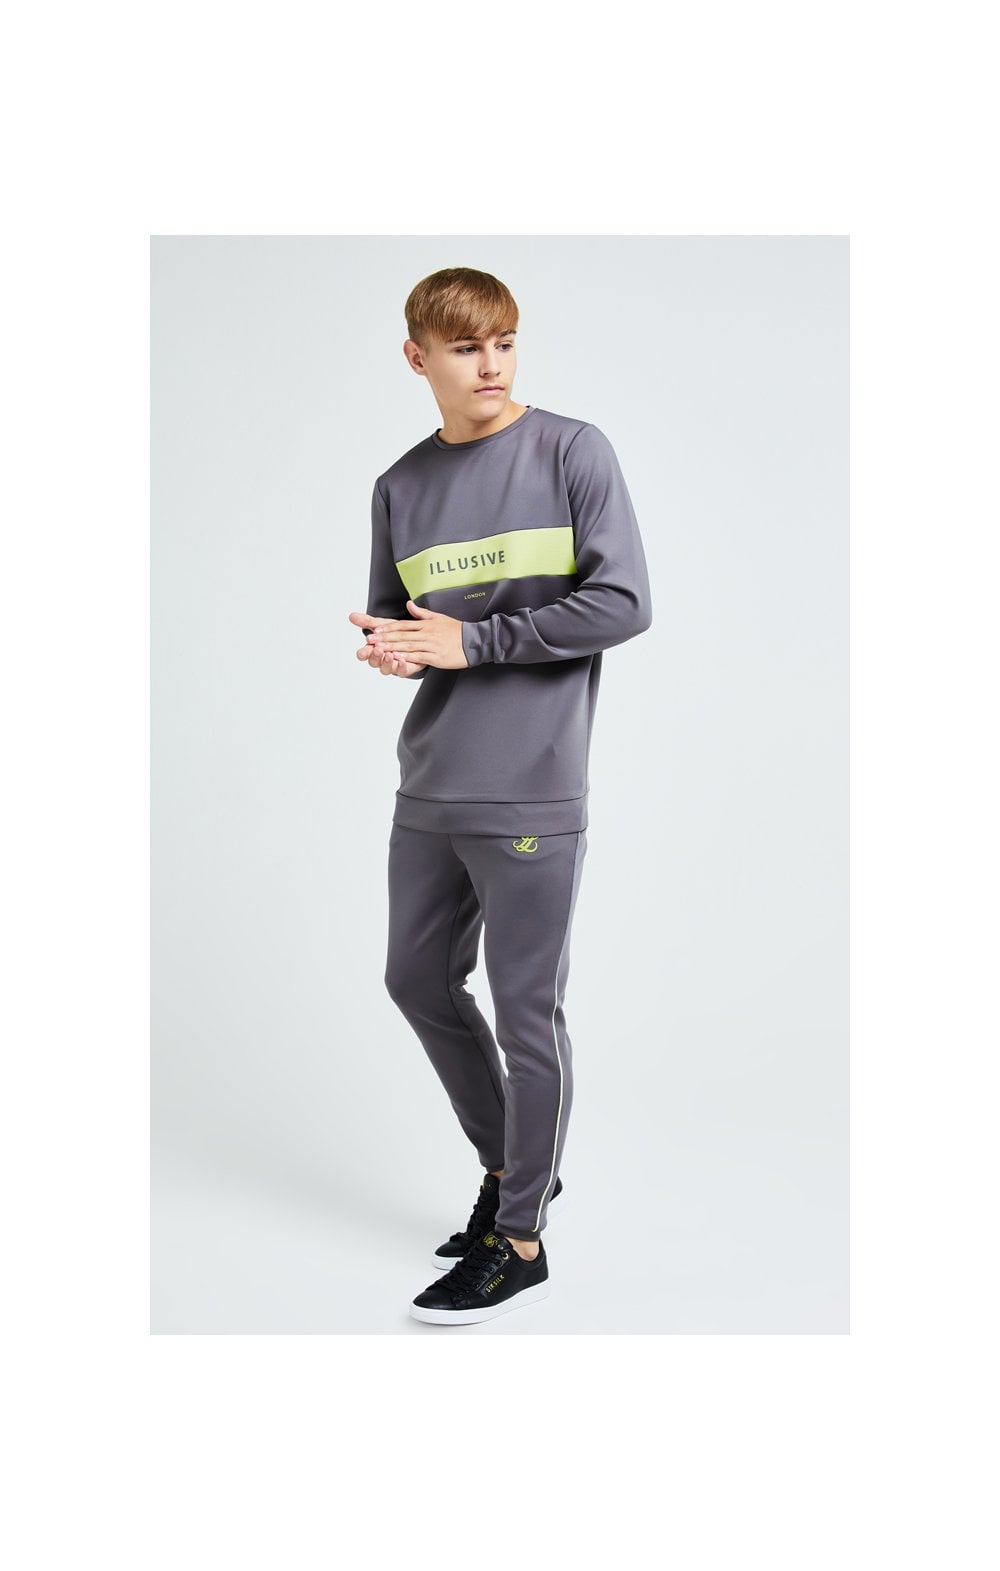 Load image into Gallery viewer, Illusive London Blaze Crew Sweater - Dark Grey & Lime (3)